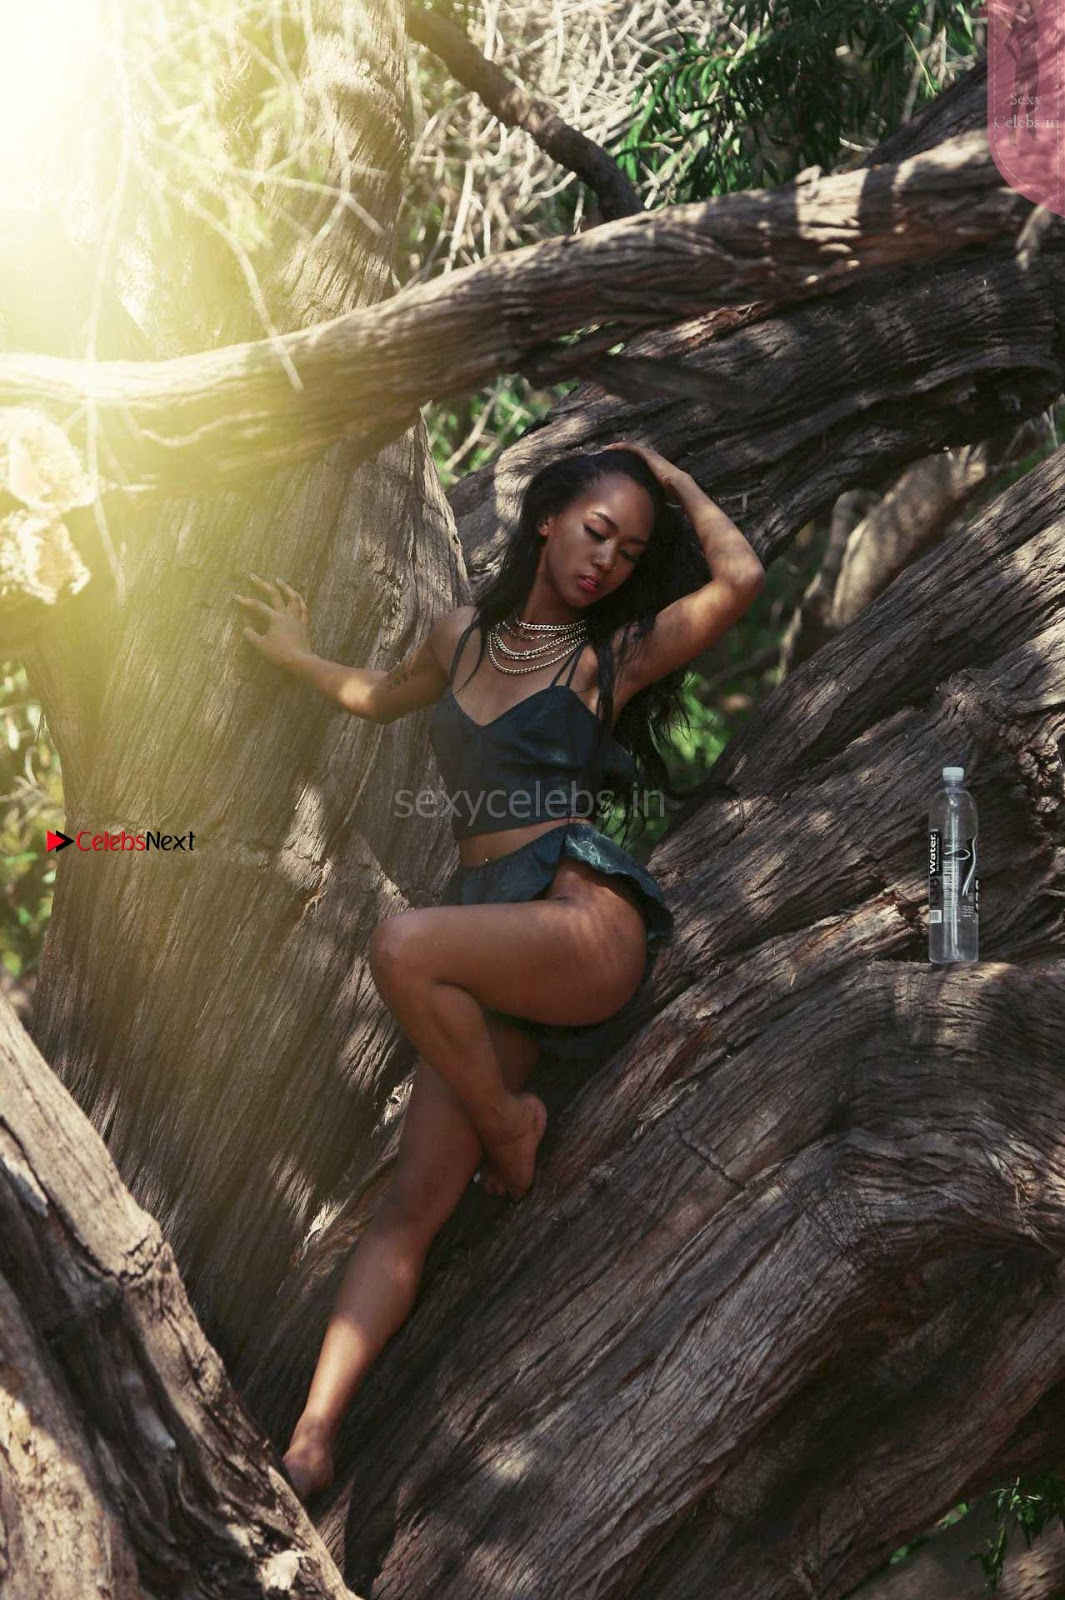 Lailanni Hussein Sexy Bikini in Jungle promoting 138 Waters ~ SexyCelebs.in Exclusive